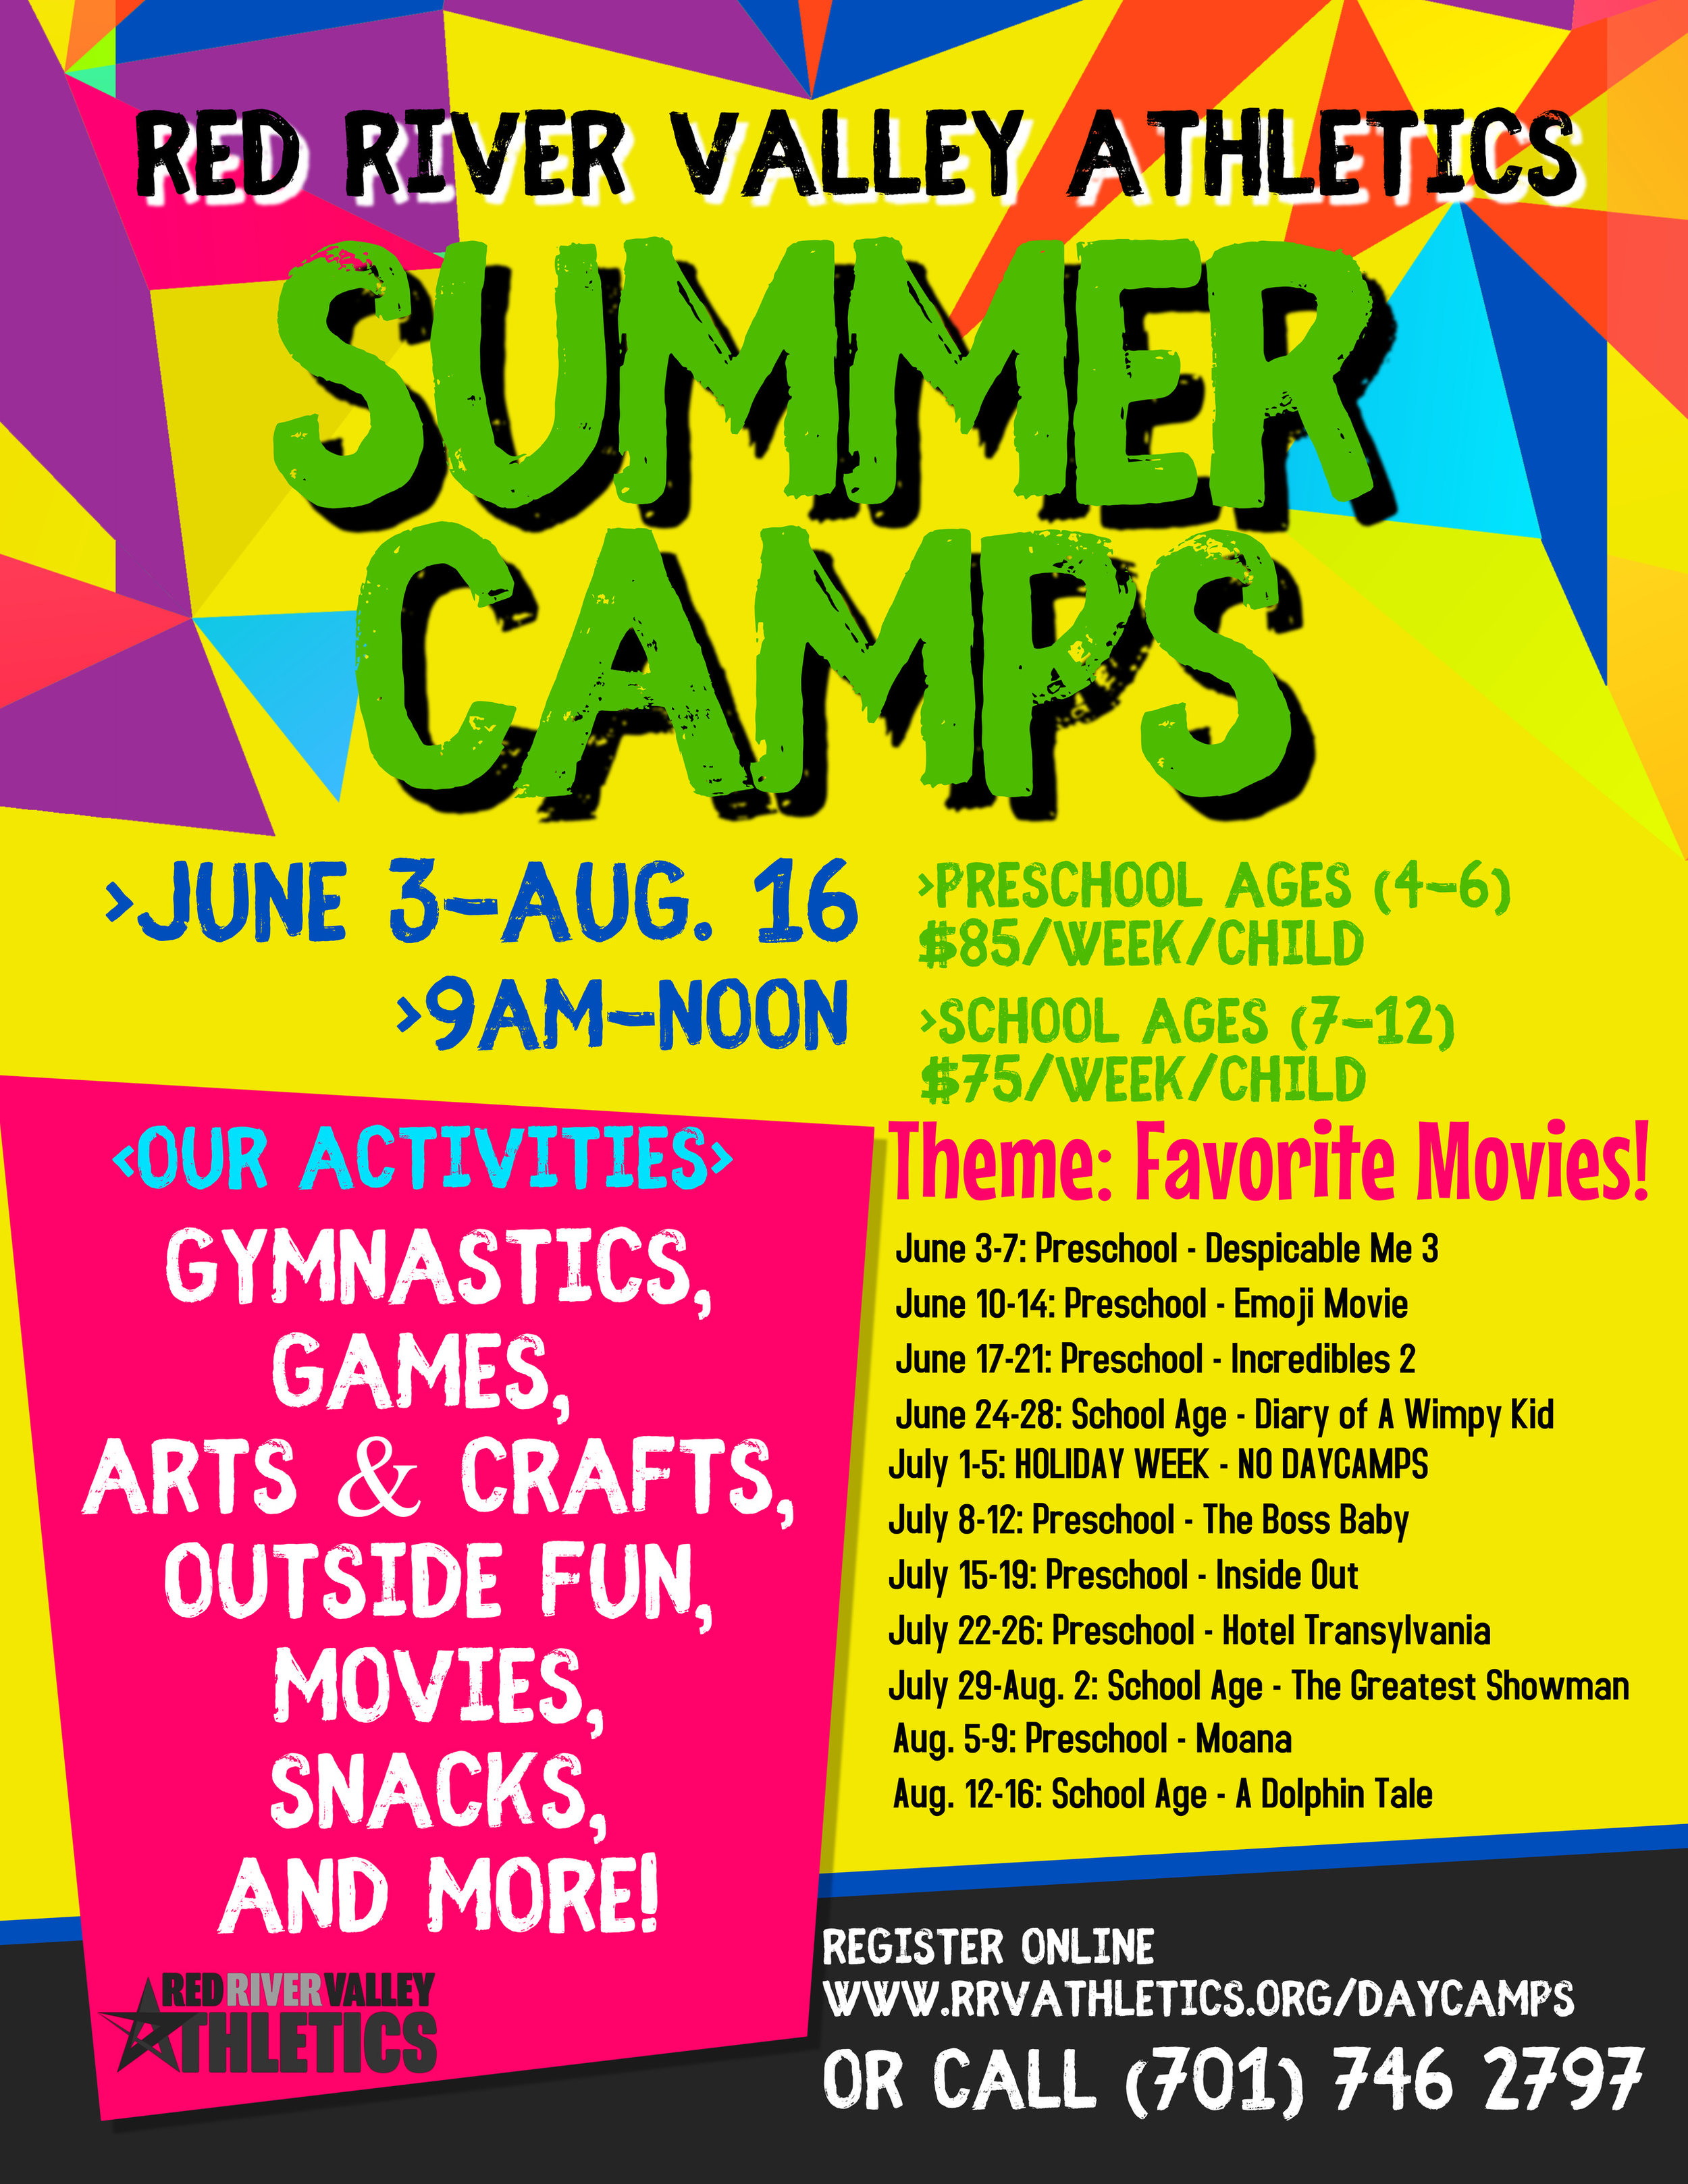 Copy of Summer Camp Flyer.jpeg